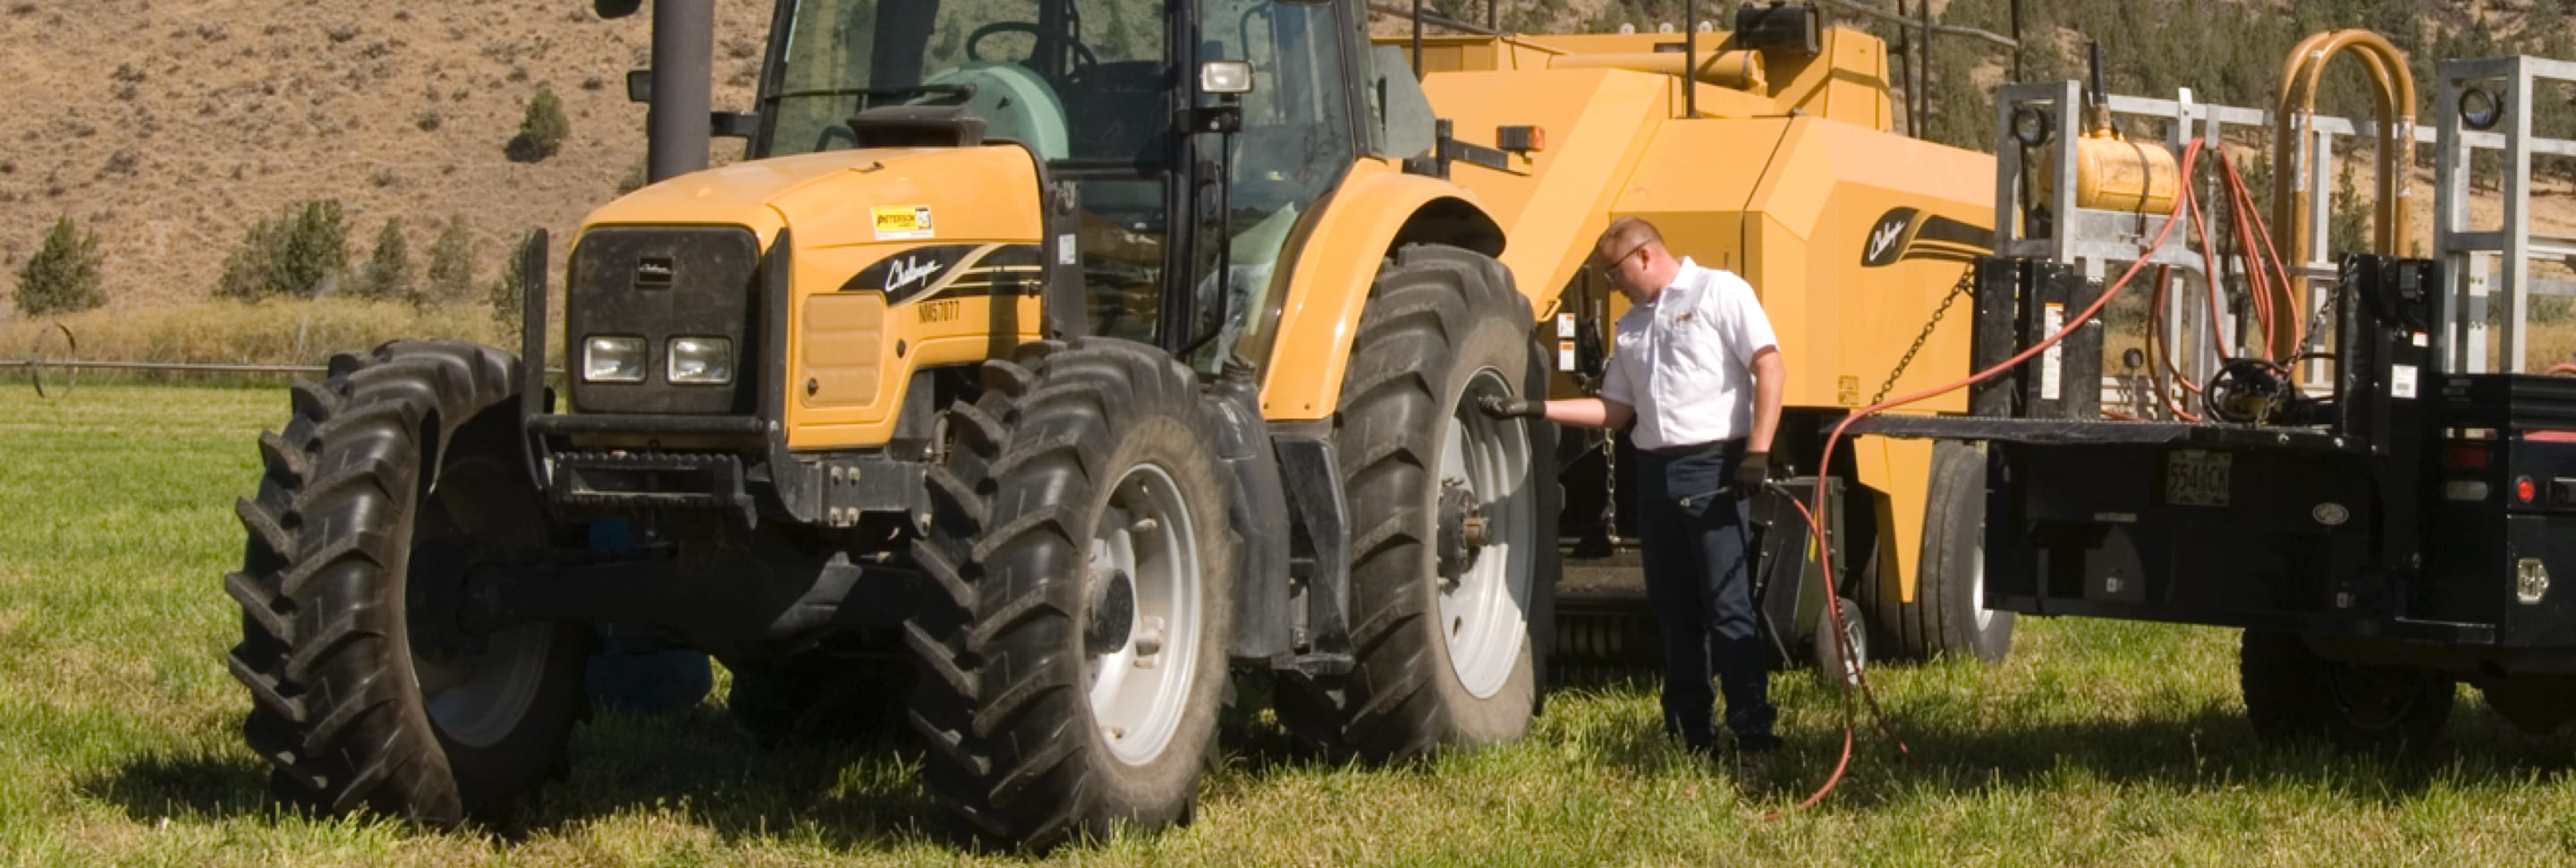 A Les Schwab technician examines a tractor tire's pressure out in the field